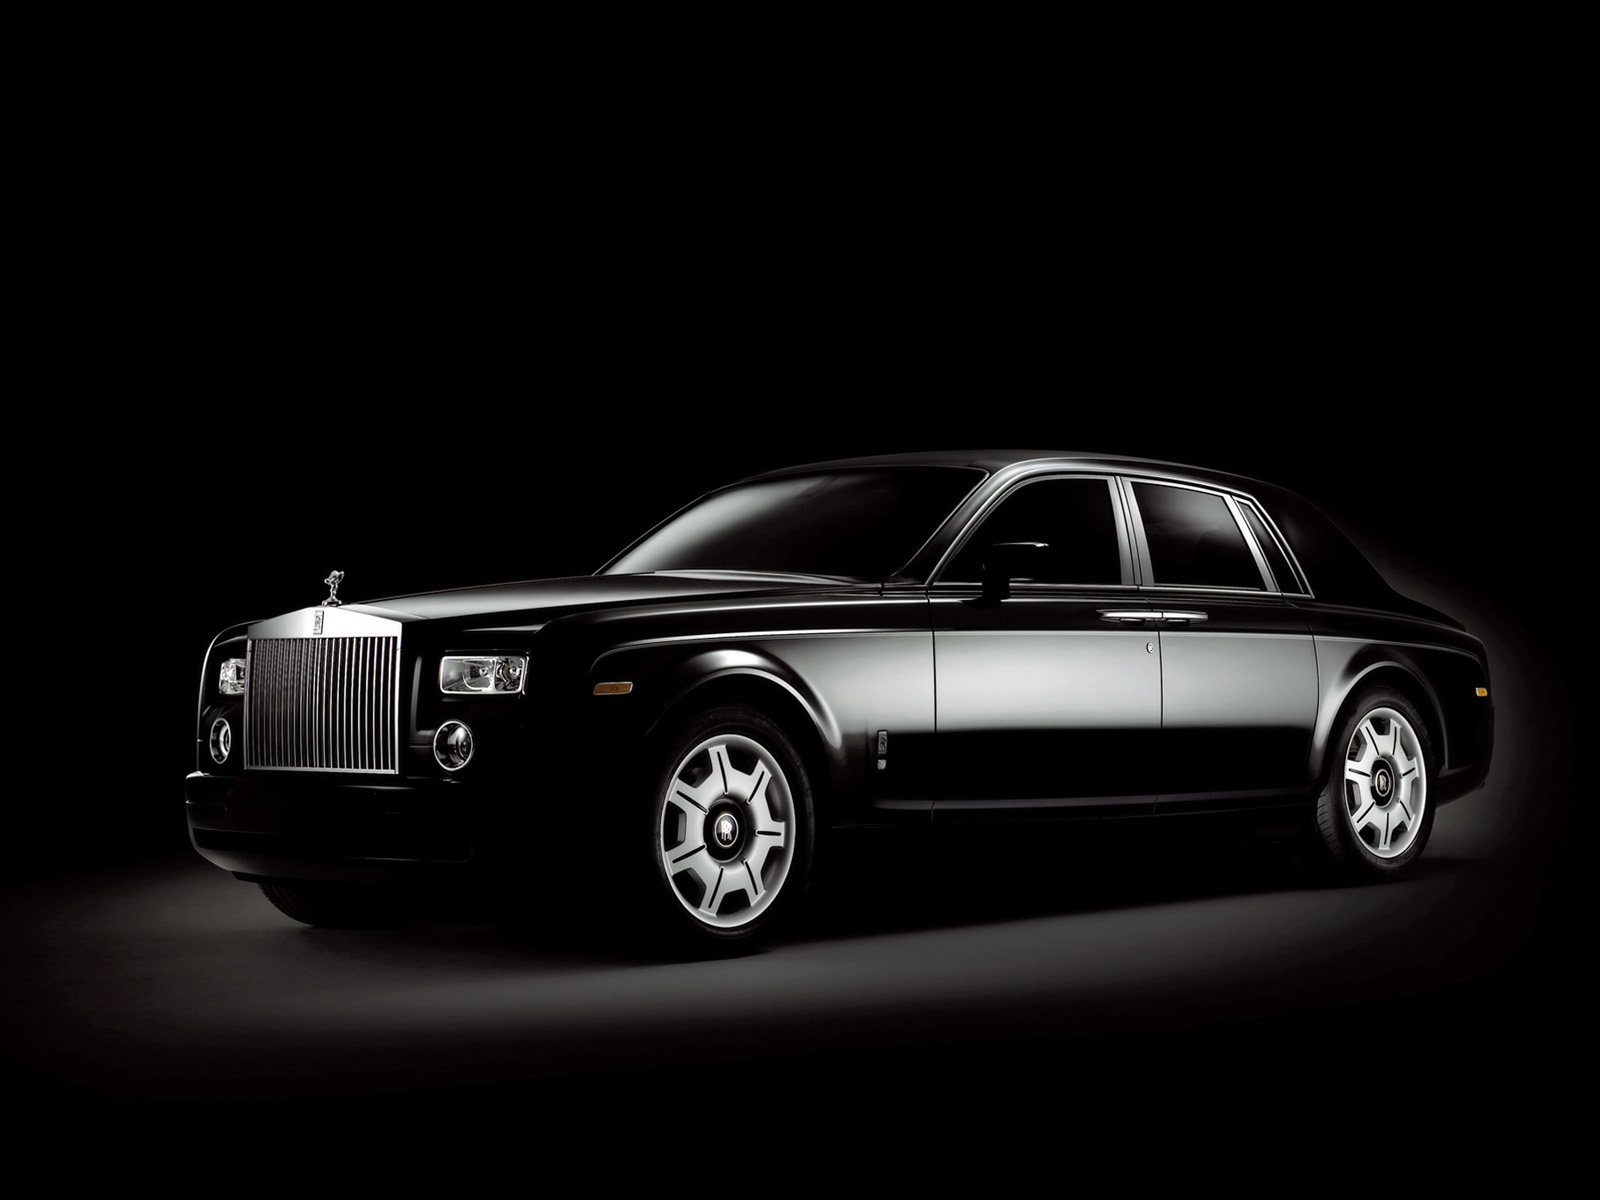 Rolls Royce Cars Wallpapers High Resolution Cars Pics Wallpapers